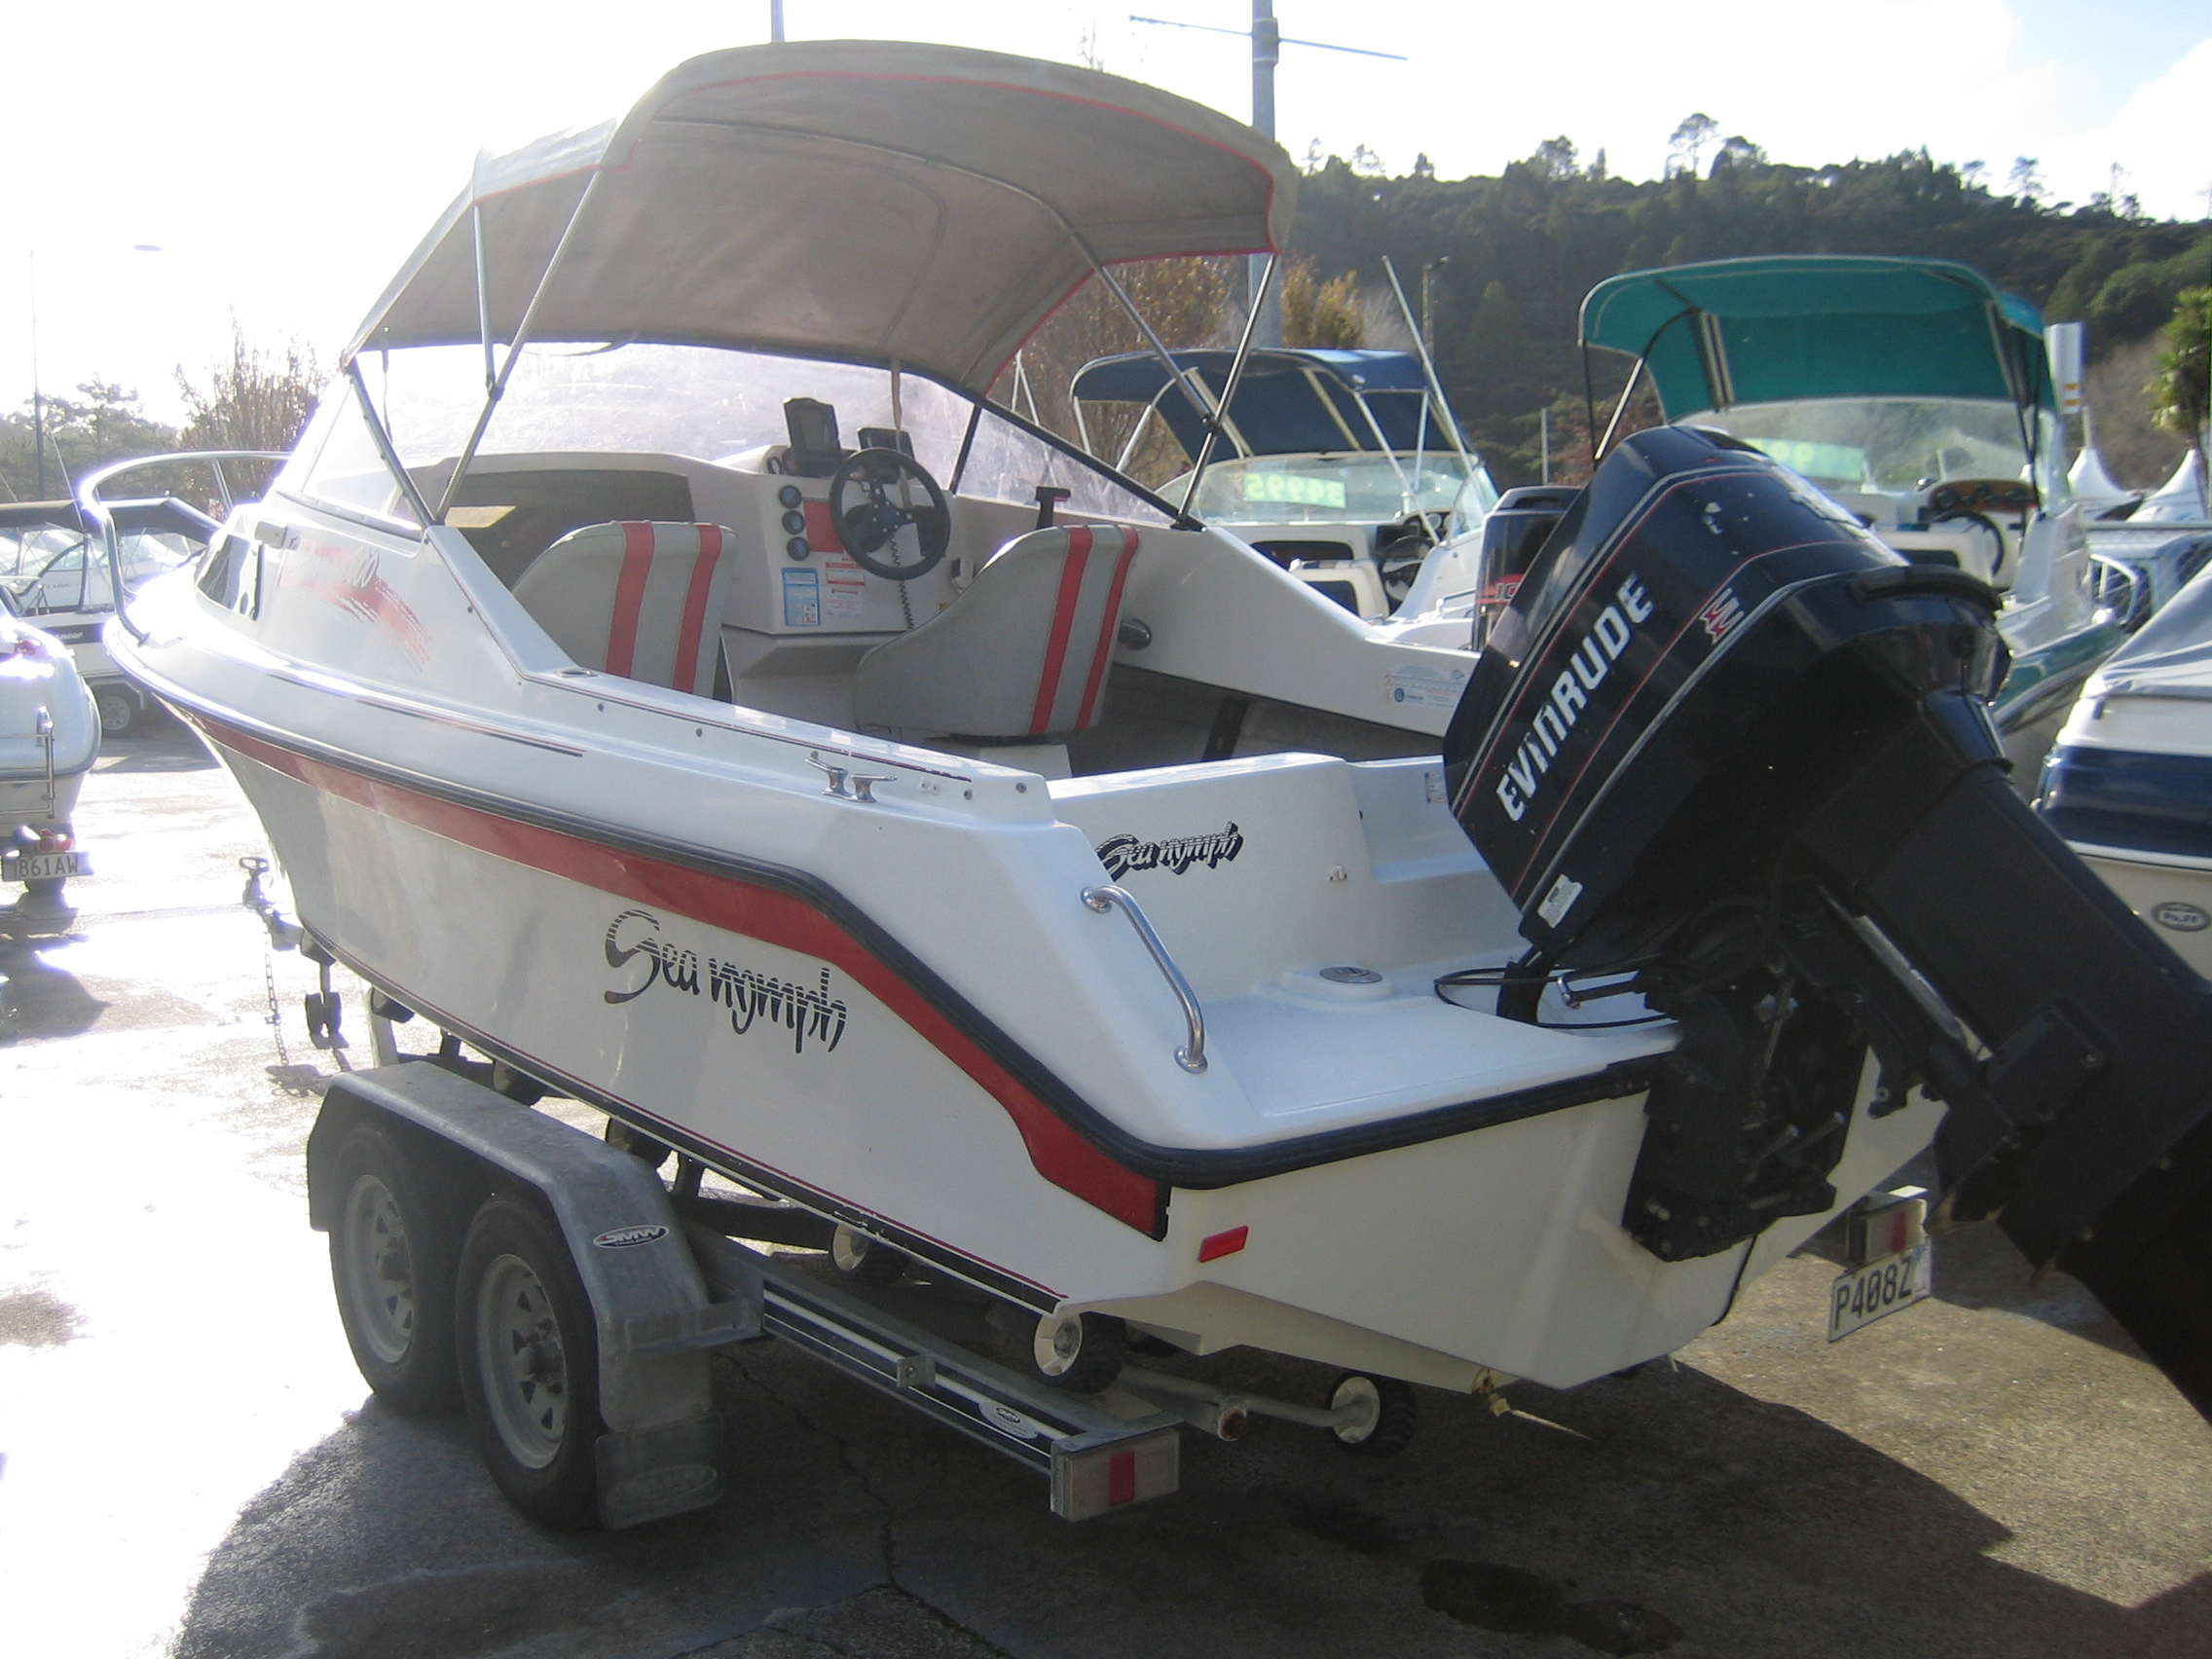 Boat for sale seanymph 600 fisherman 1994 for Outboard motors for sale nz